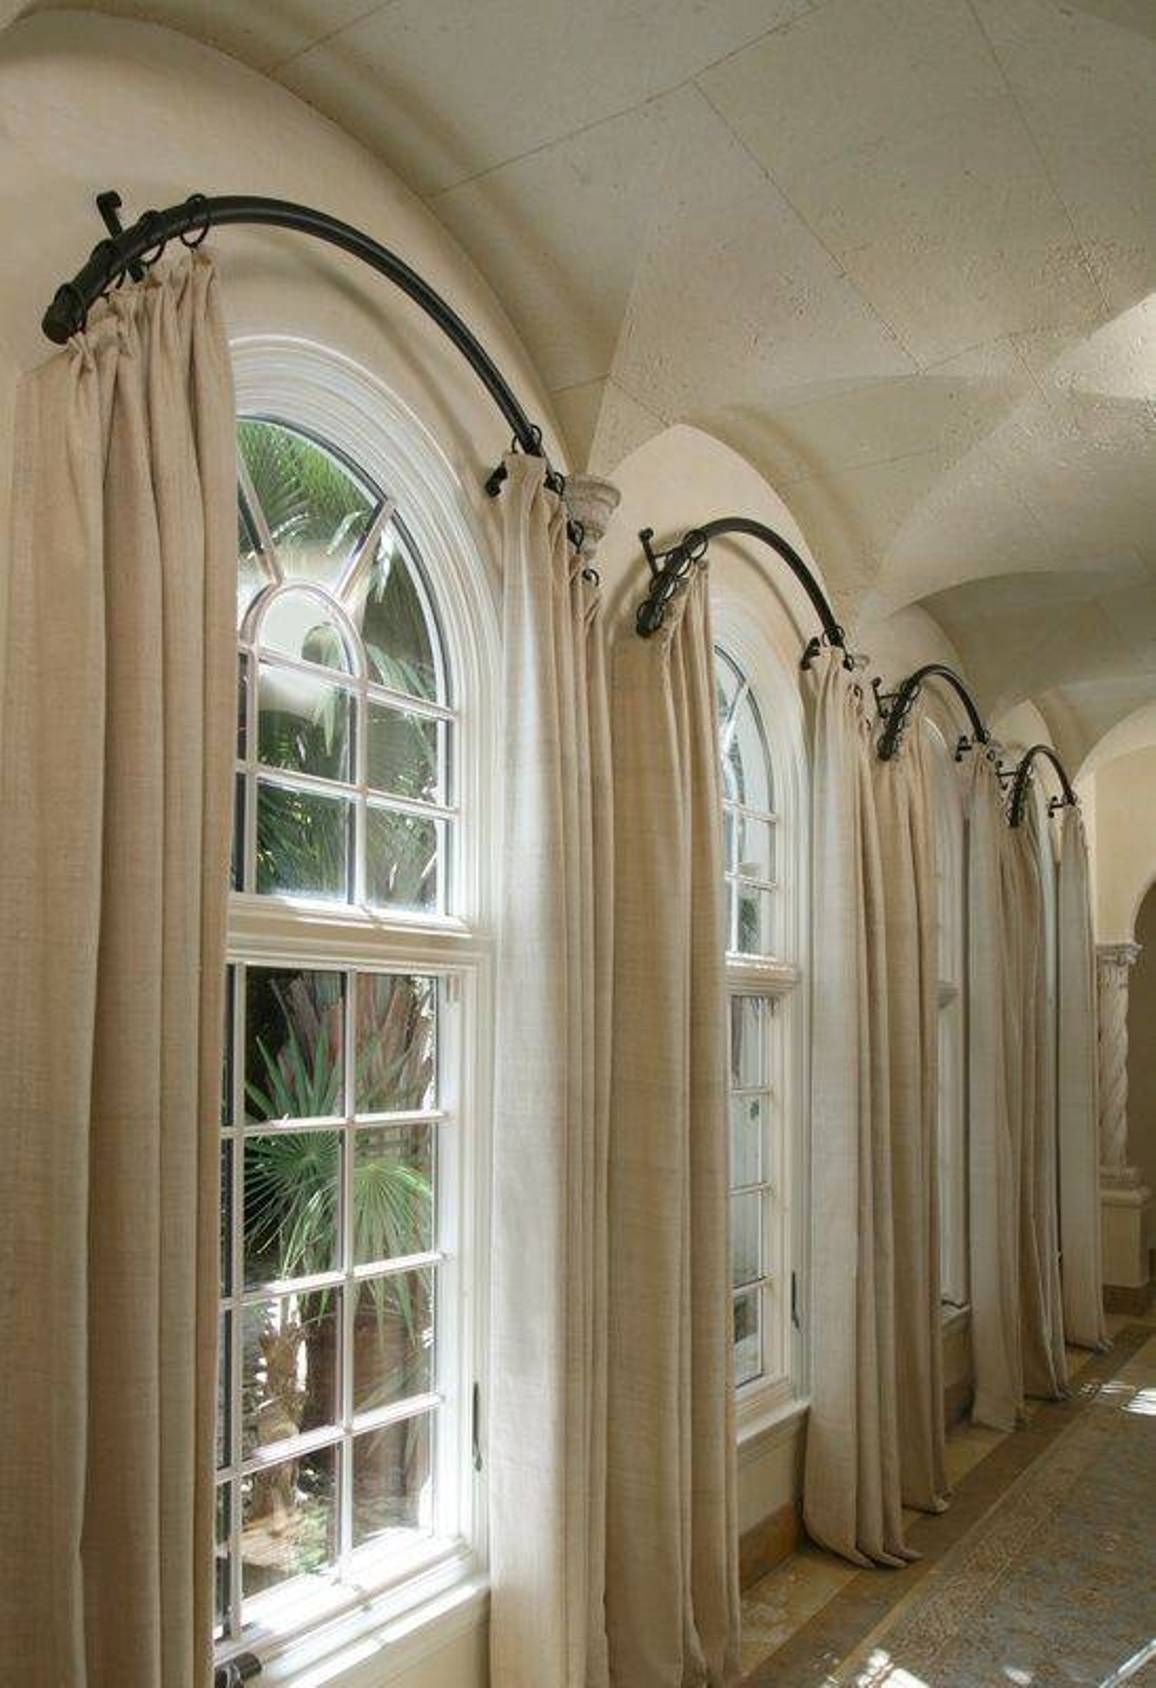 Window coverings arched windows  valancesforarchedwindows   arched window treatments